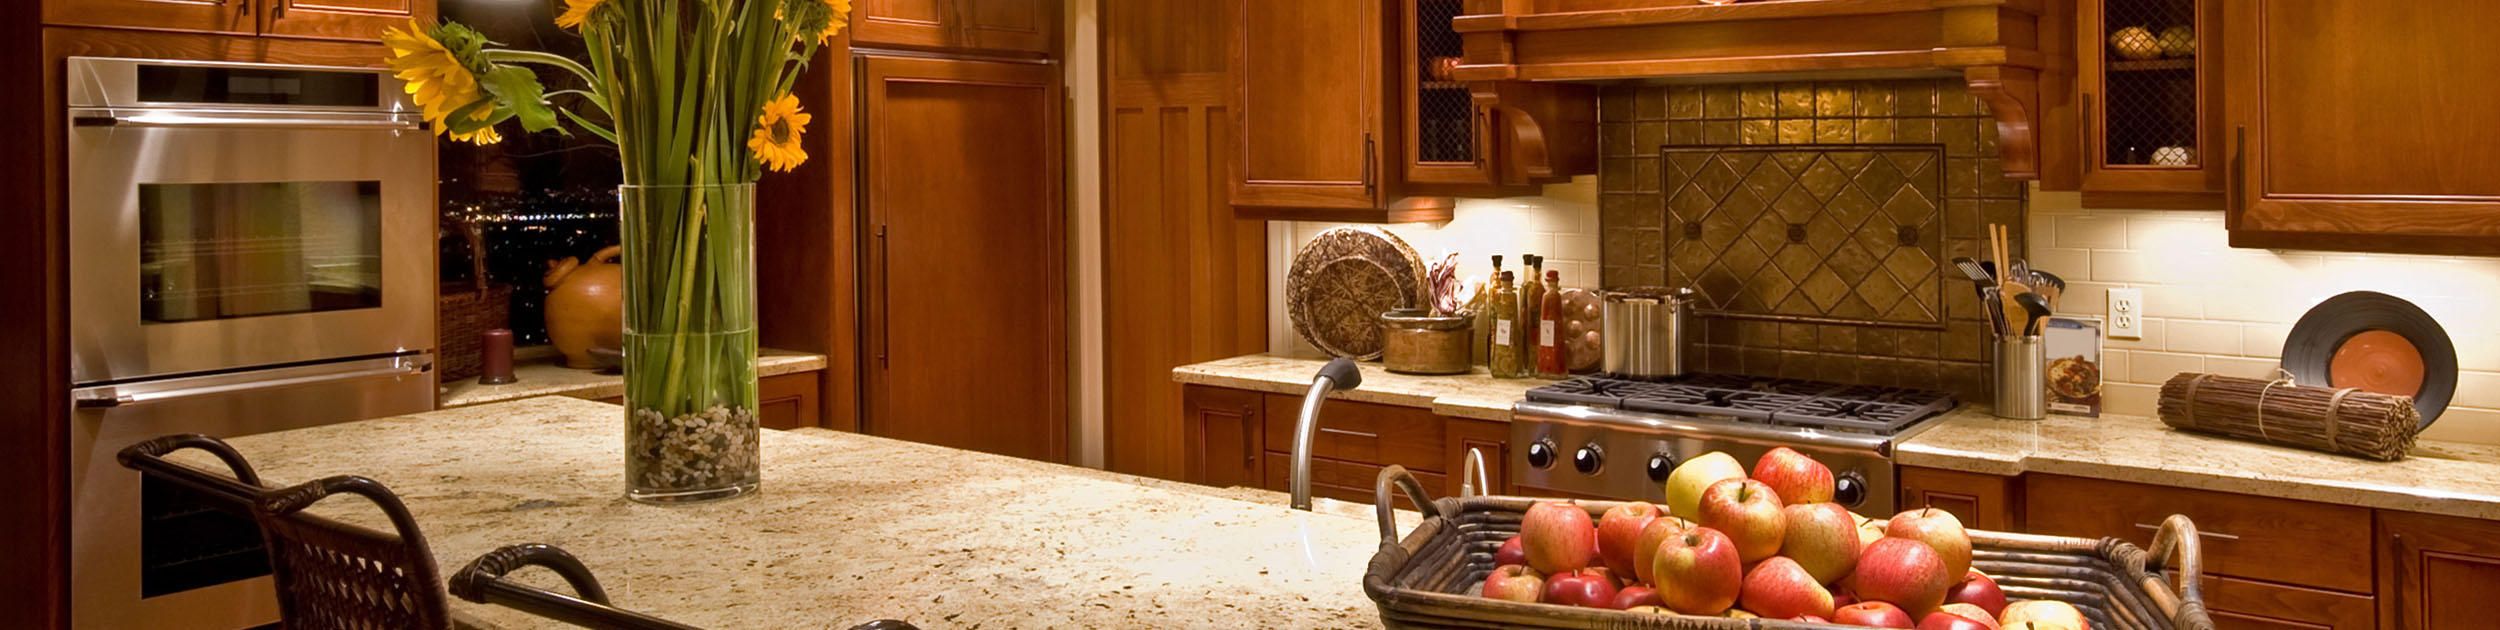 view of warmly colored kitchen with stainless steel appliances and granite counters - a large basket of apples and a vase of sunflowers are on the island